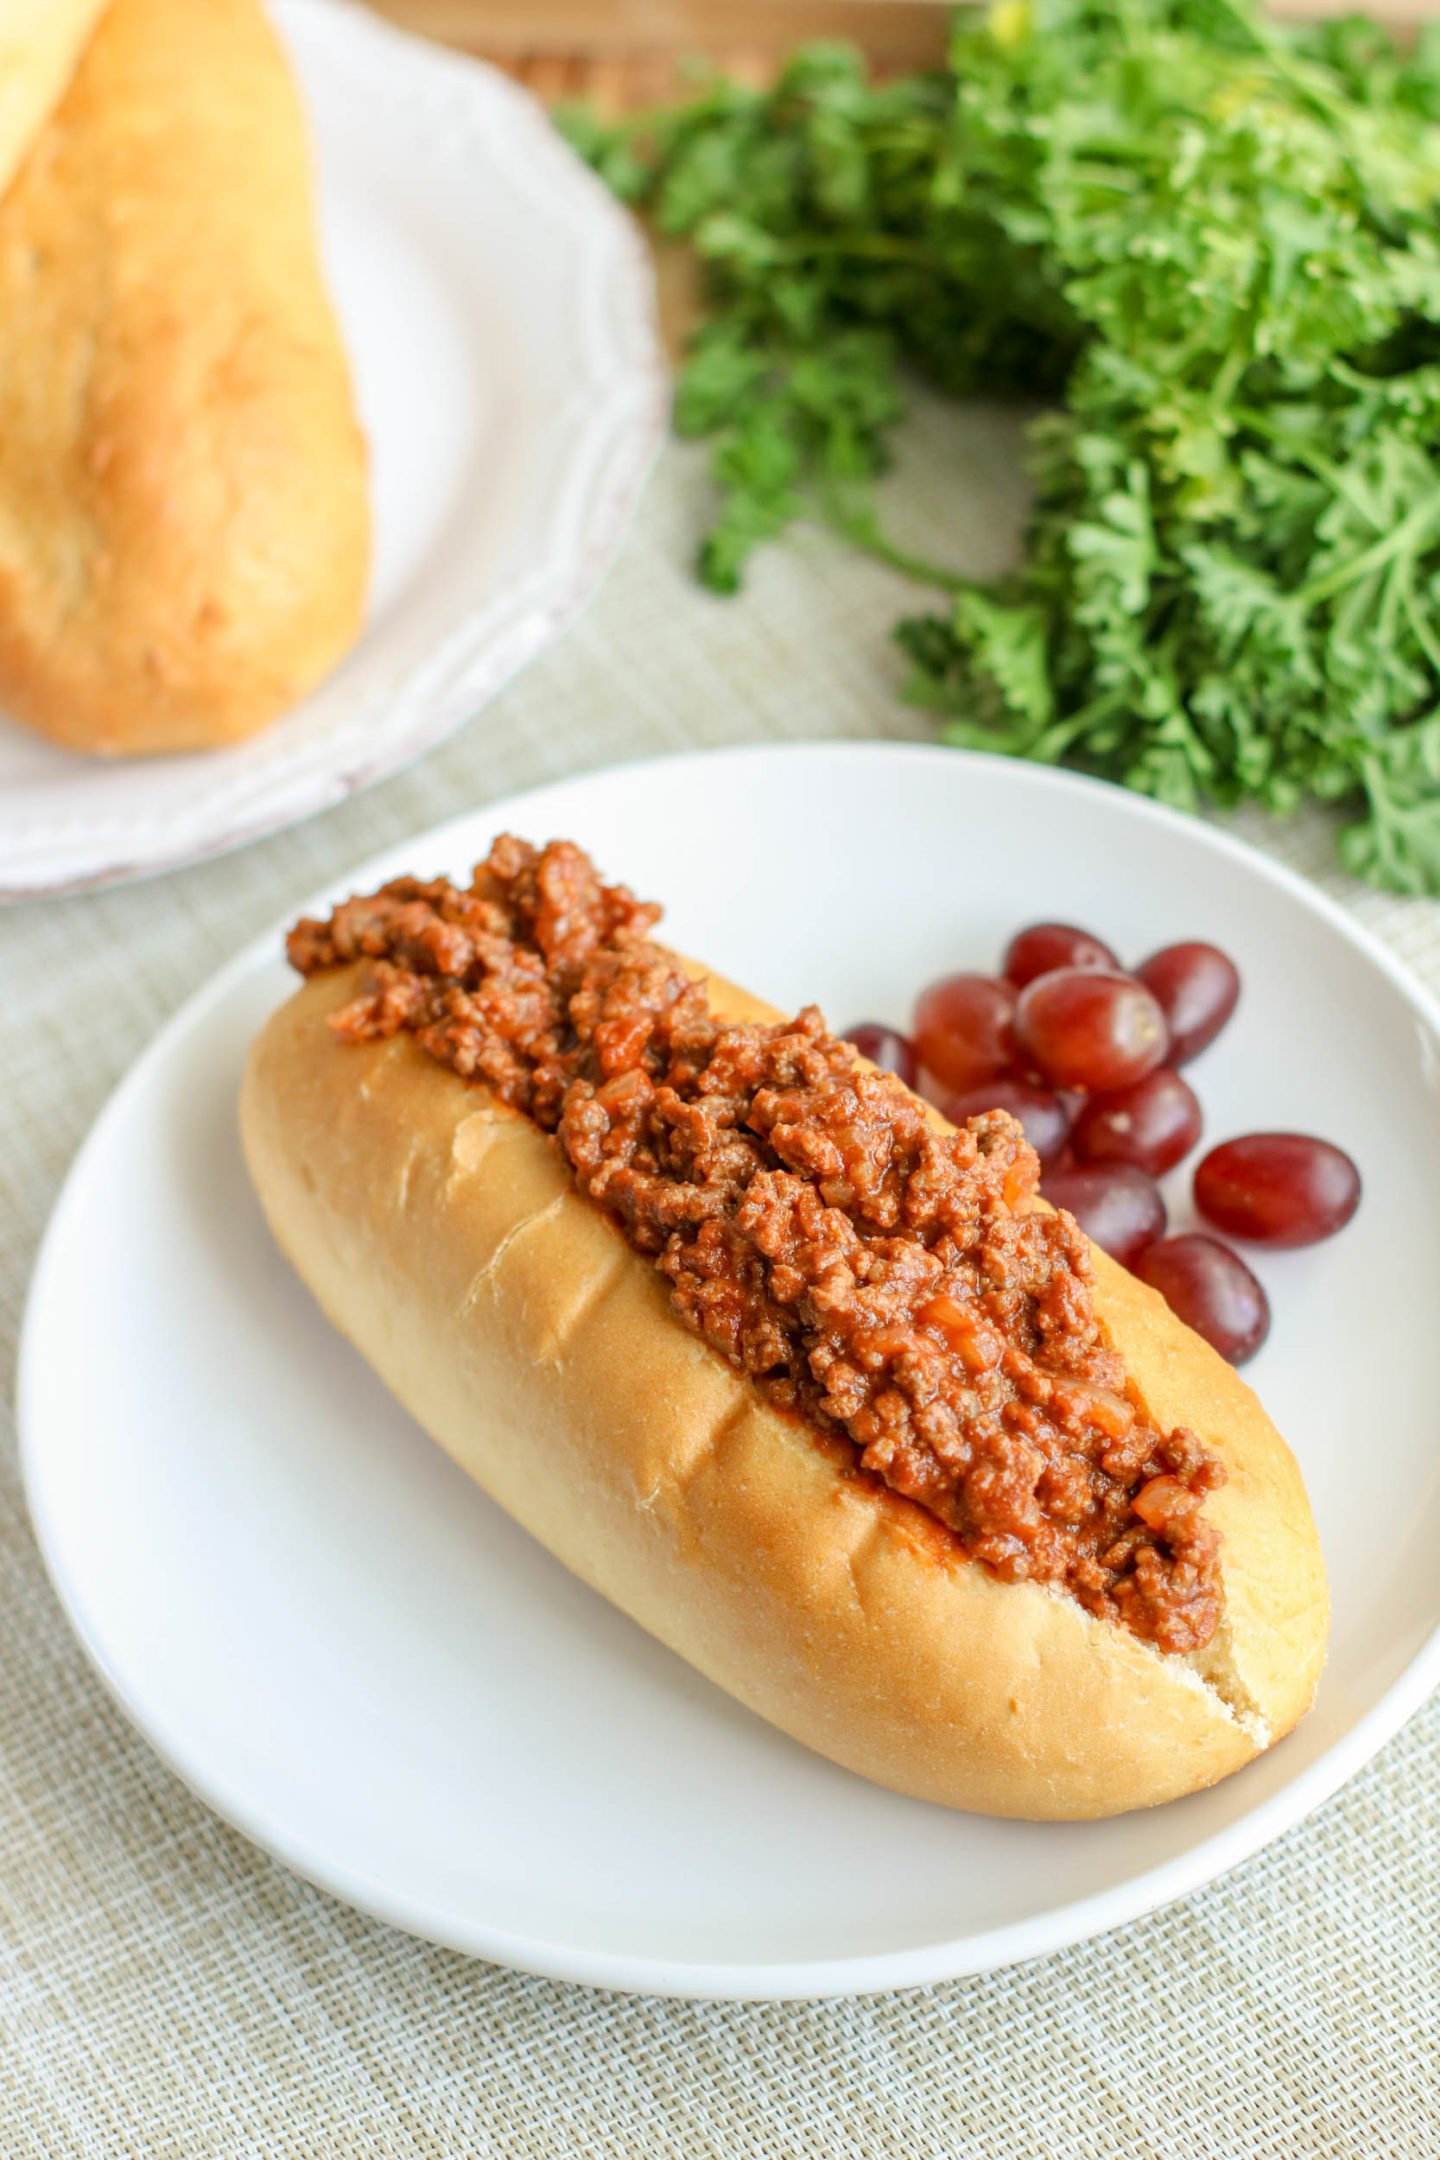 The finished sloppy joes in a bun, on a plate.